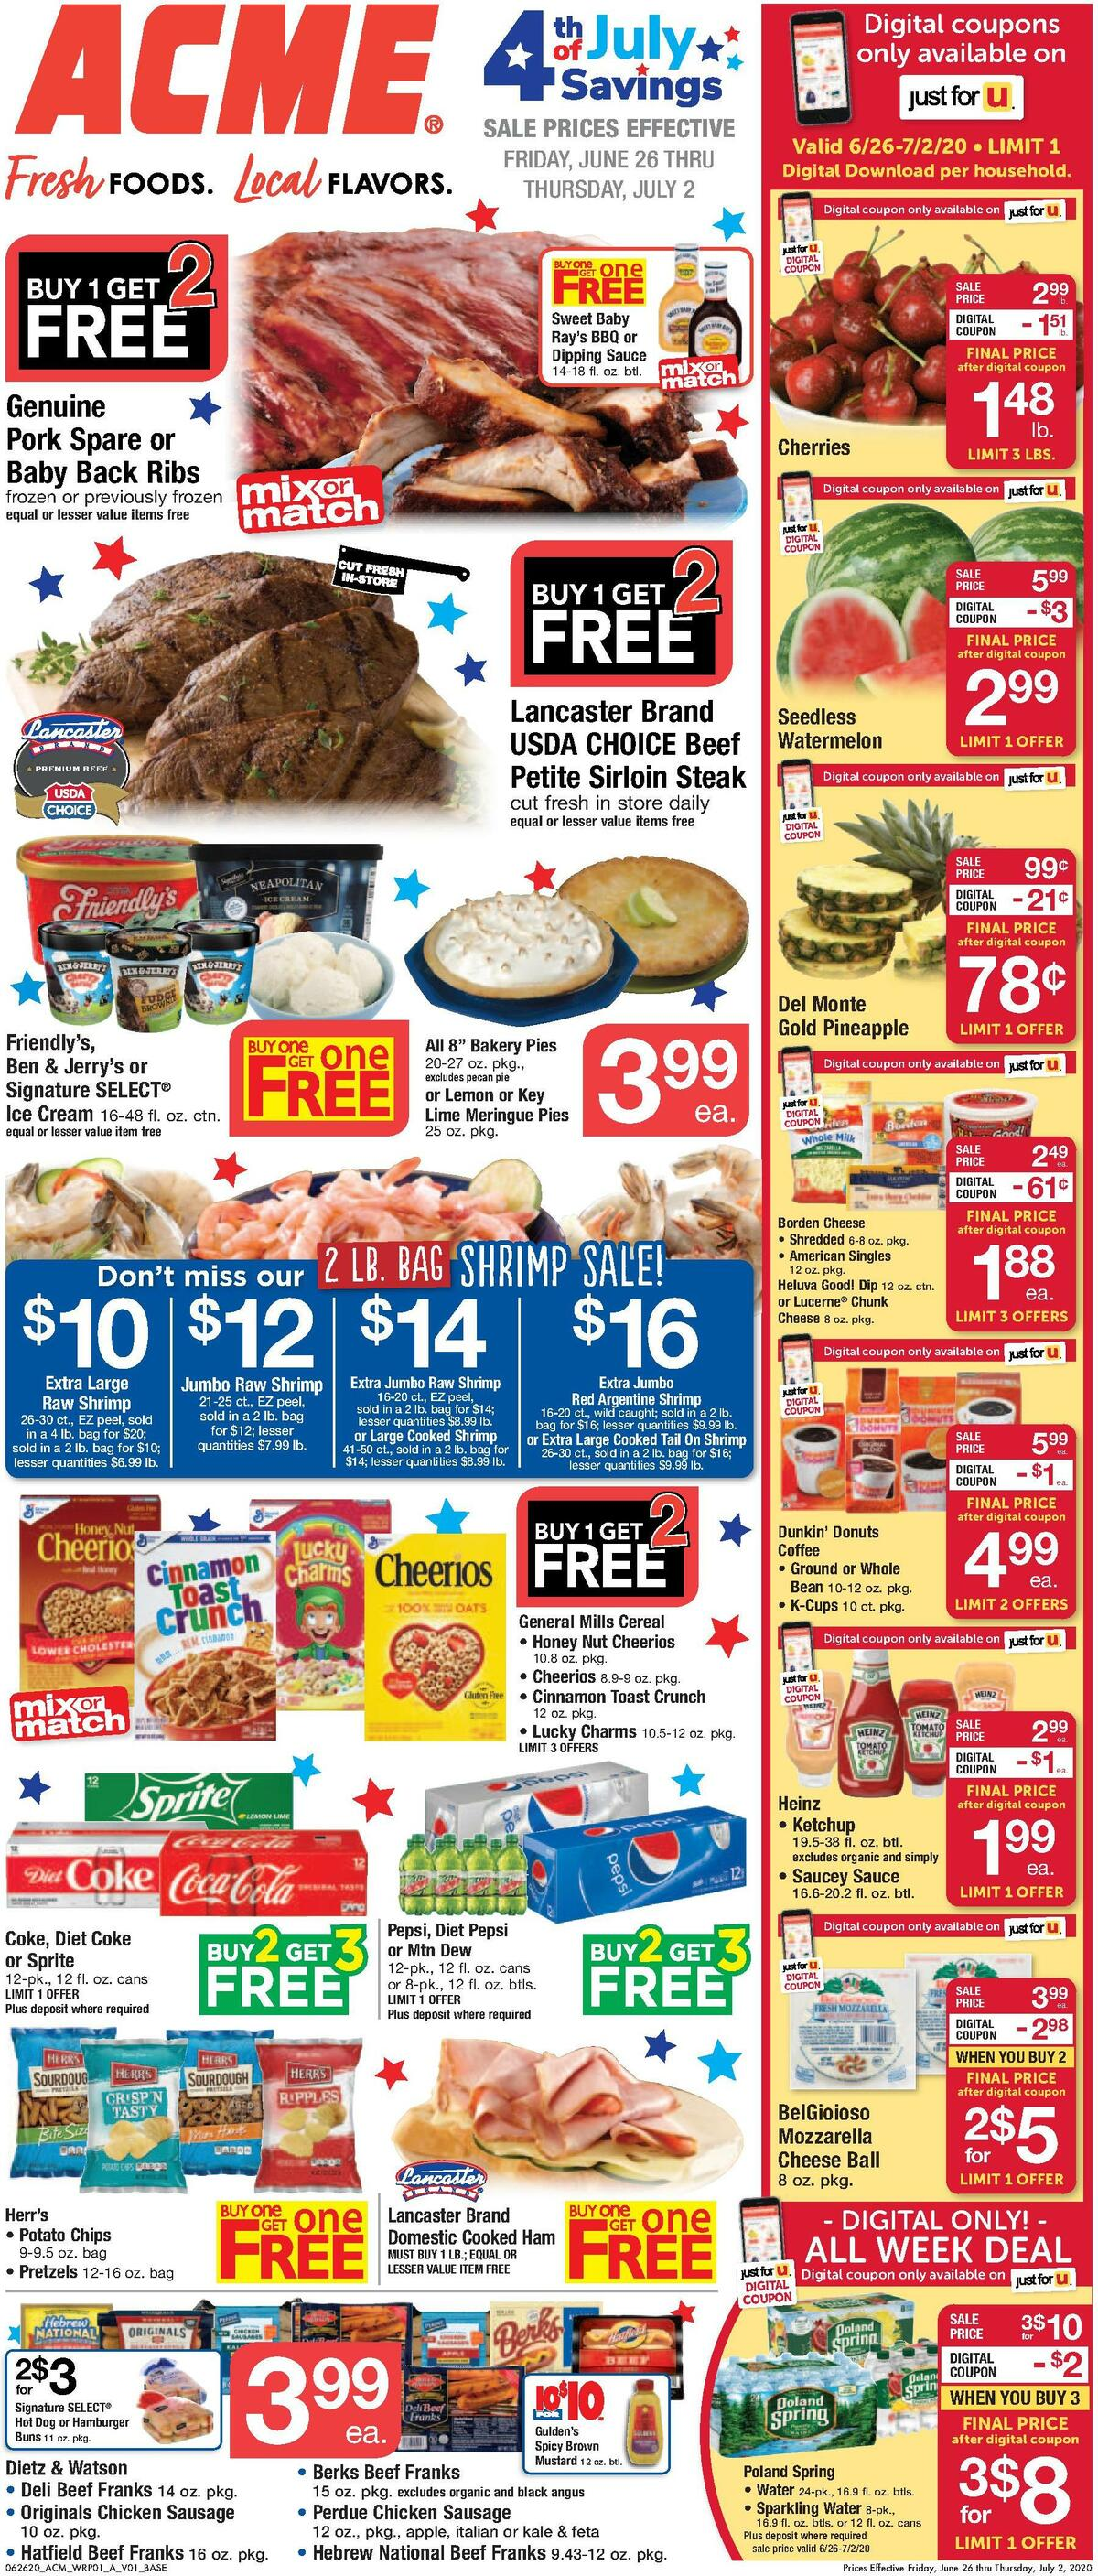 ACME Markets Weekly Ad from June 26